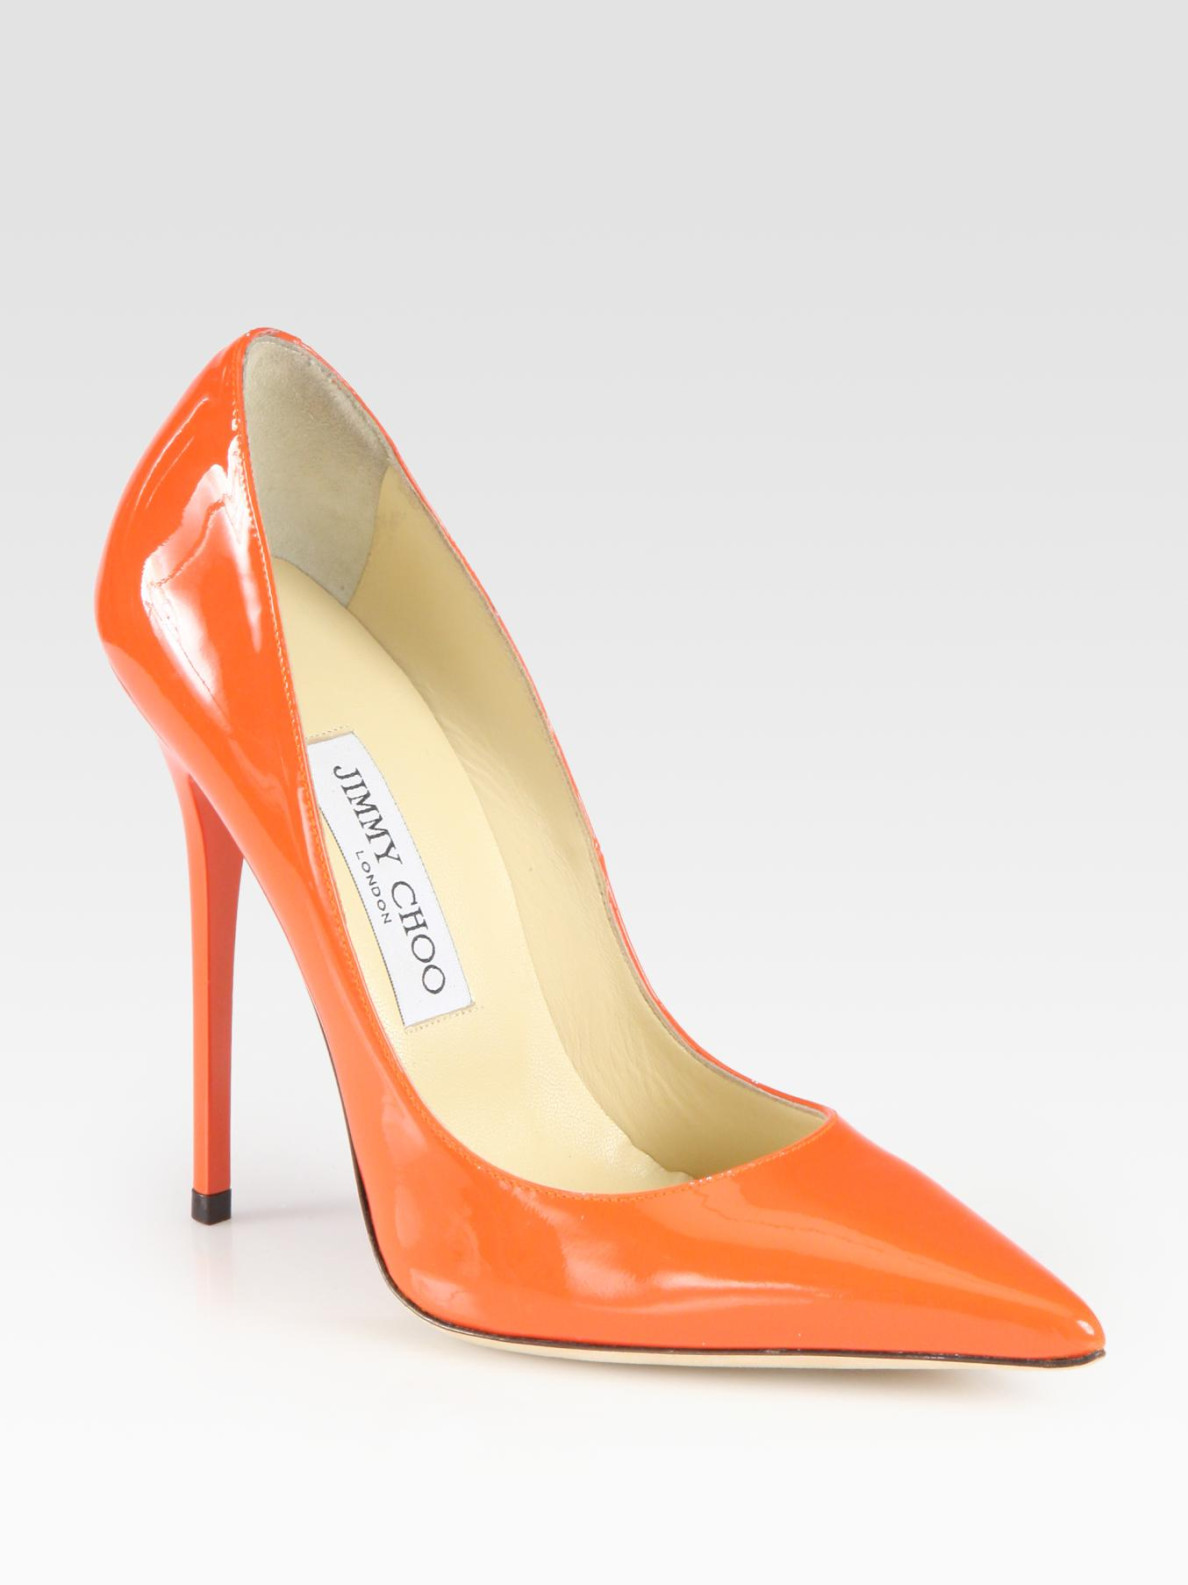 144afcac176 Lyst - Jimmy Choo Anouk Patent Leather Pumps in Orange